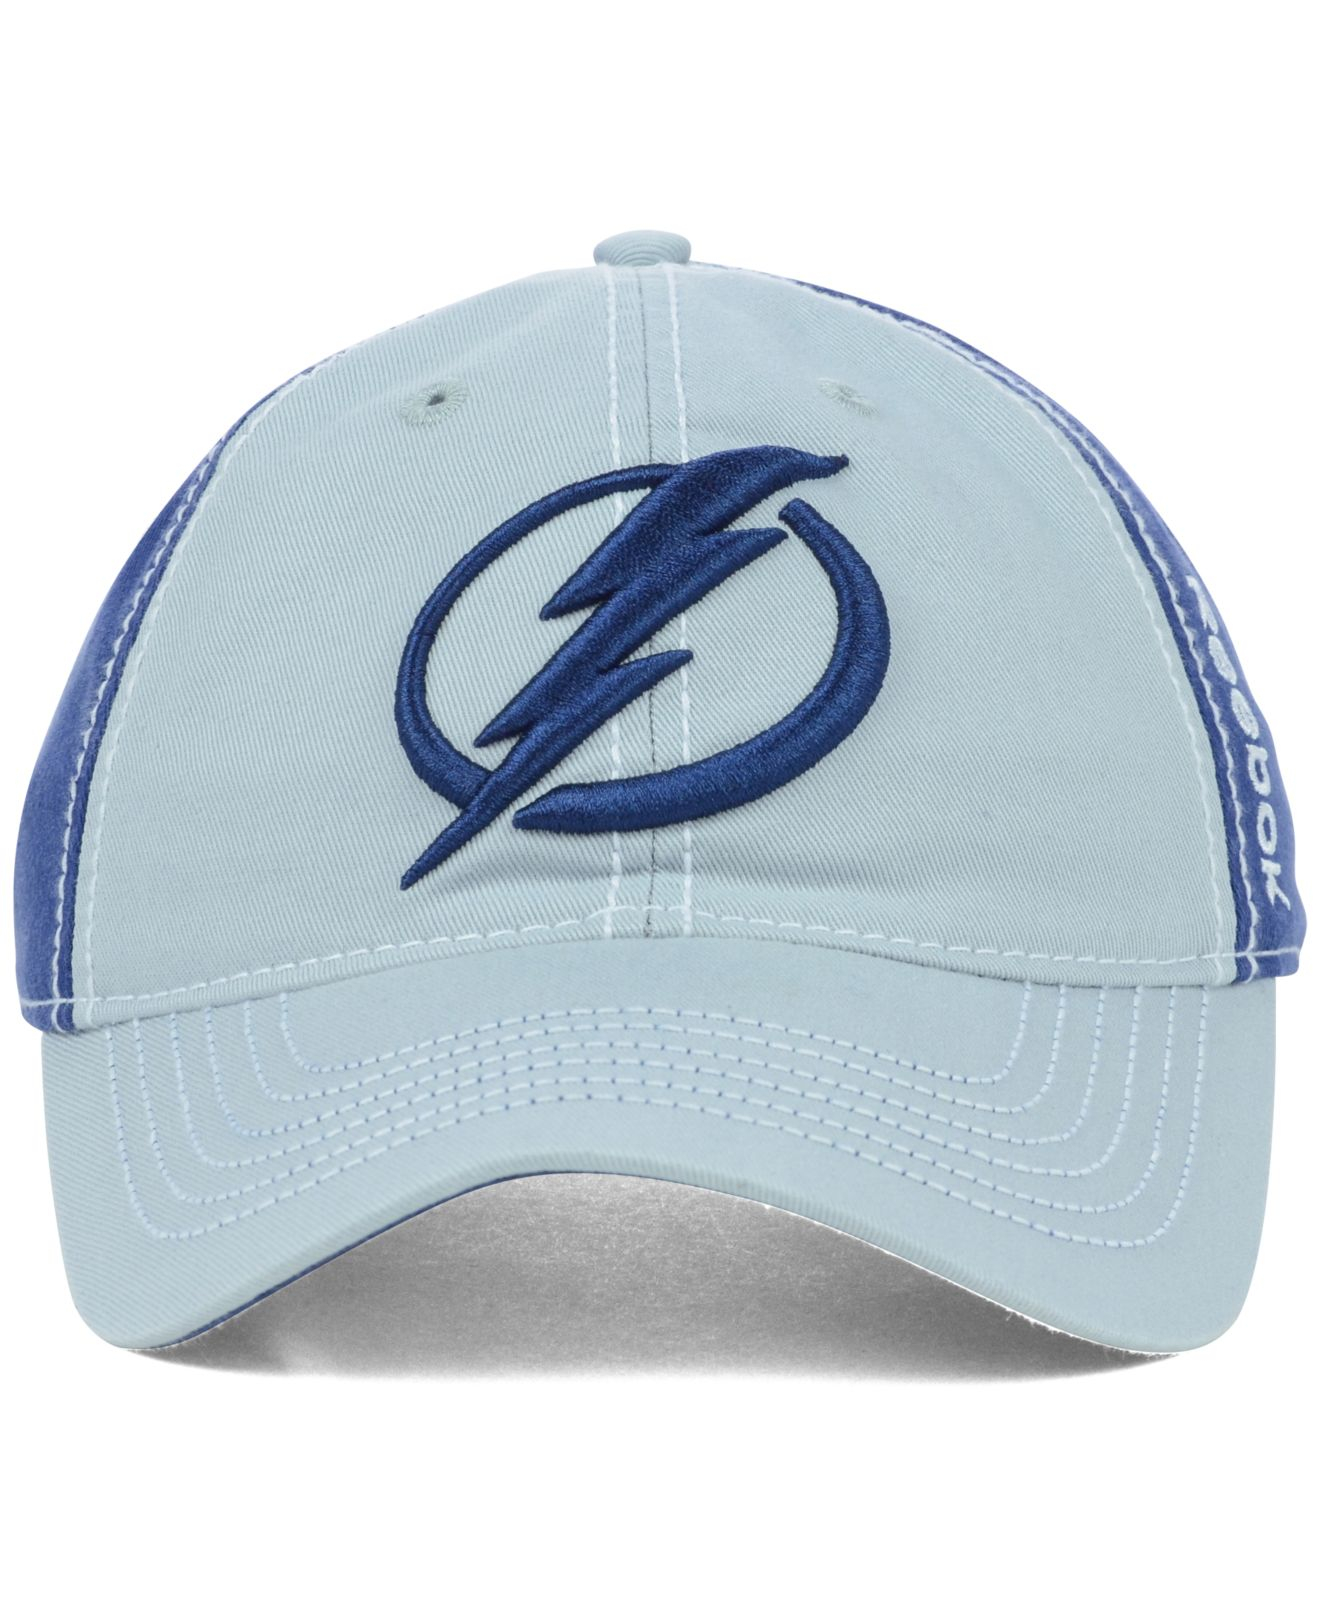 5936b7386f7 Lyst - Reebok Tampa Bay Lightning Nhl Spin Slouch Cap in Blue for Men